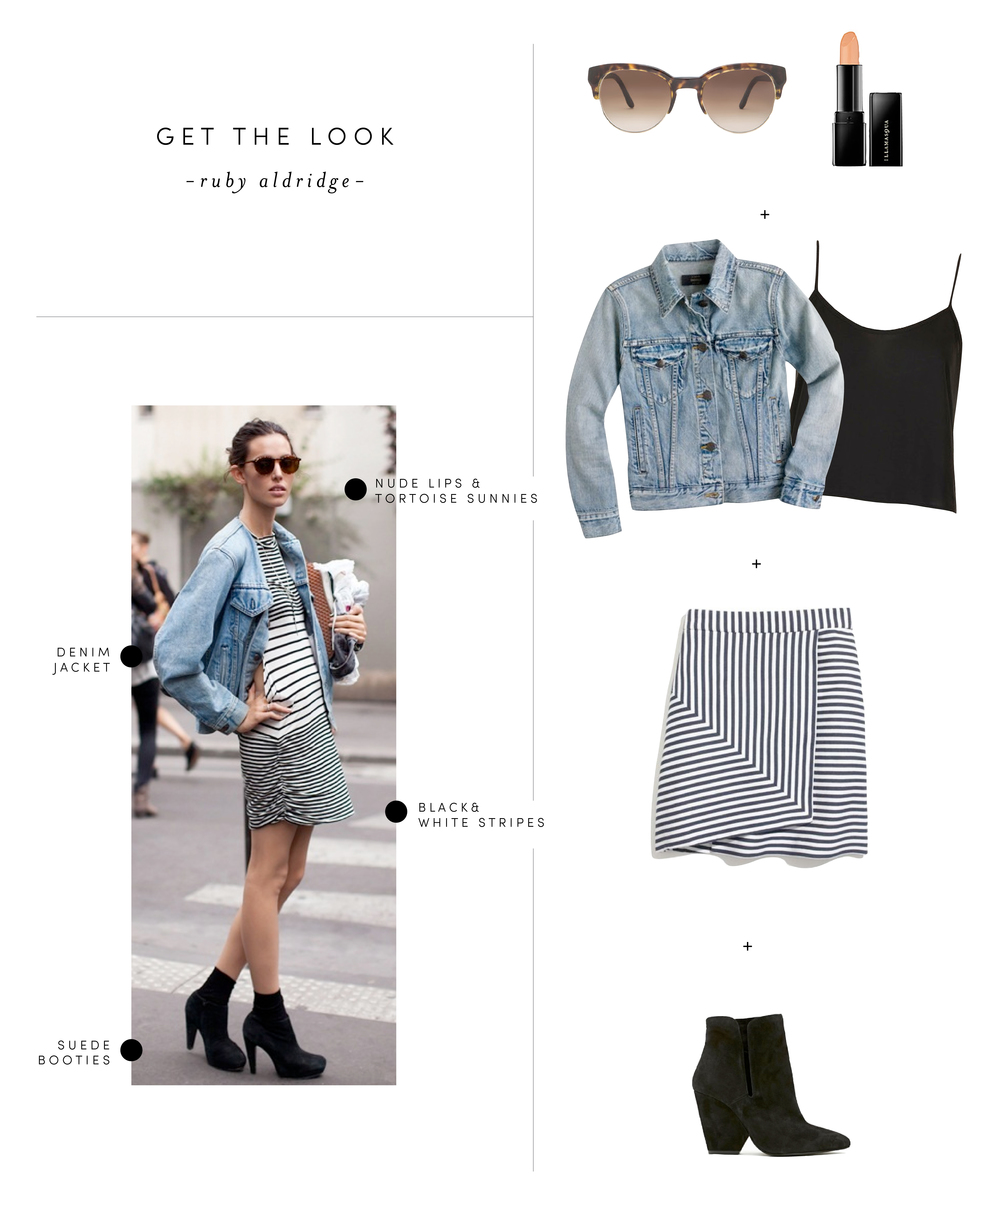 'Get the Look' Feature Street style/Celebrity fashion round up.